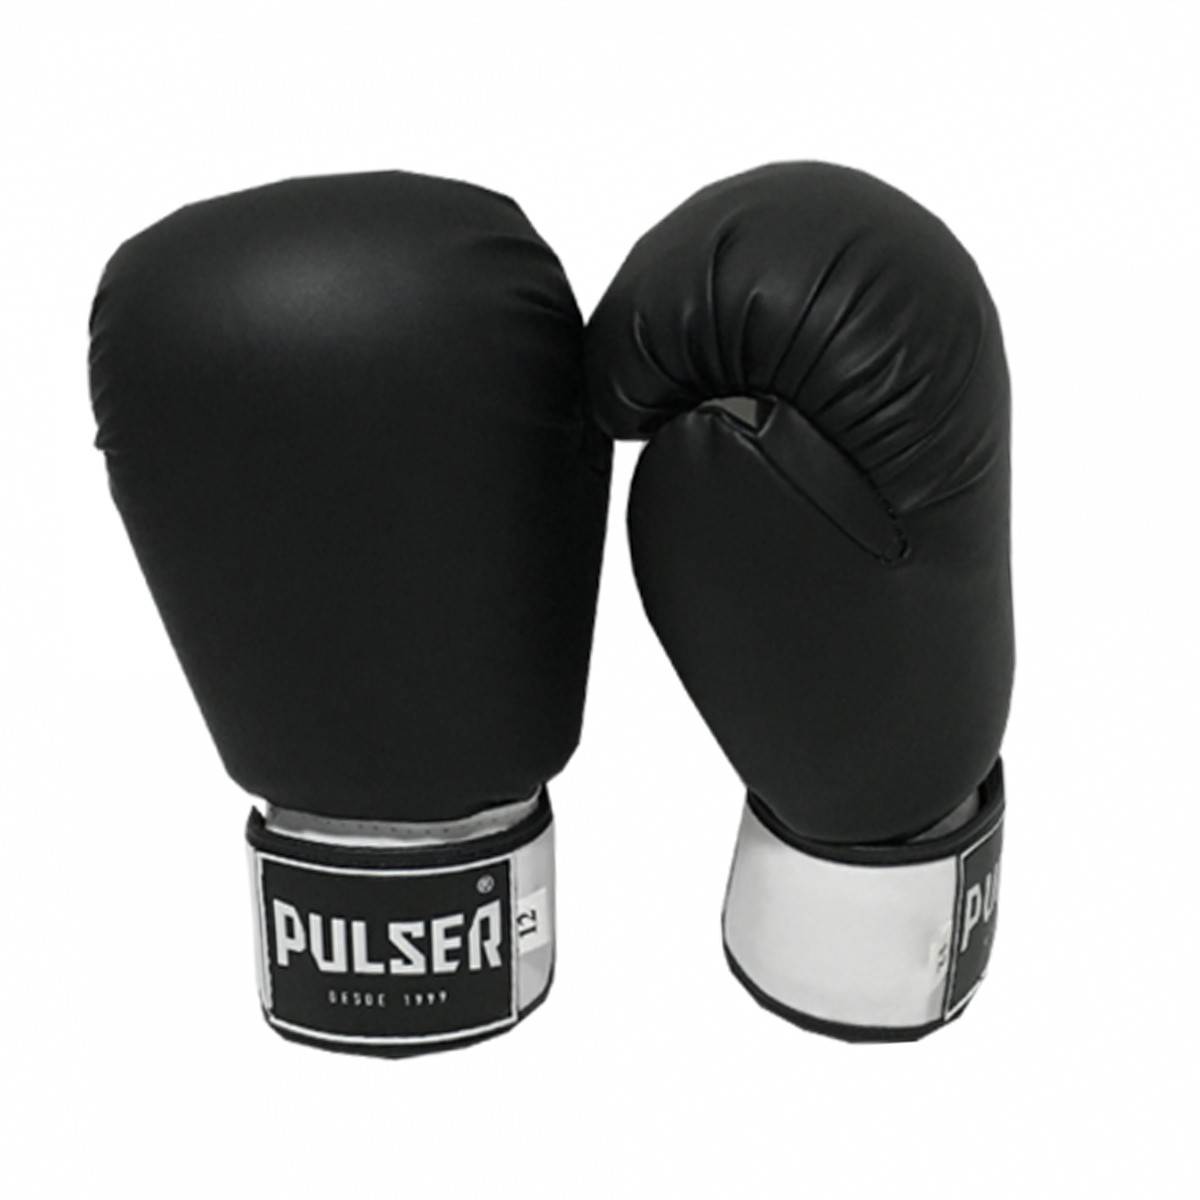 Kit de Muay Thai / Kickboxing 12oz - Preto - Pulser  - PRALUTA SHOP